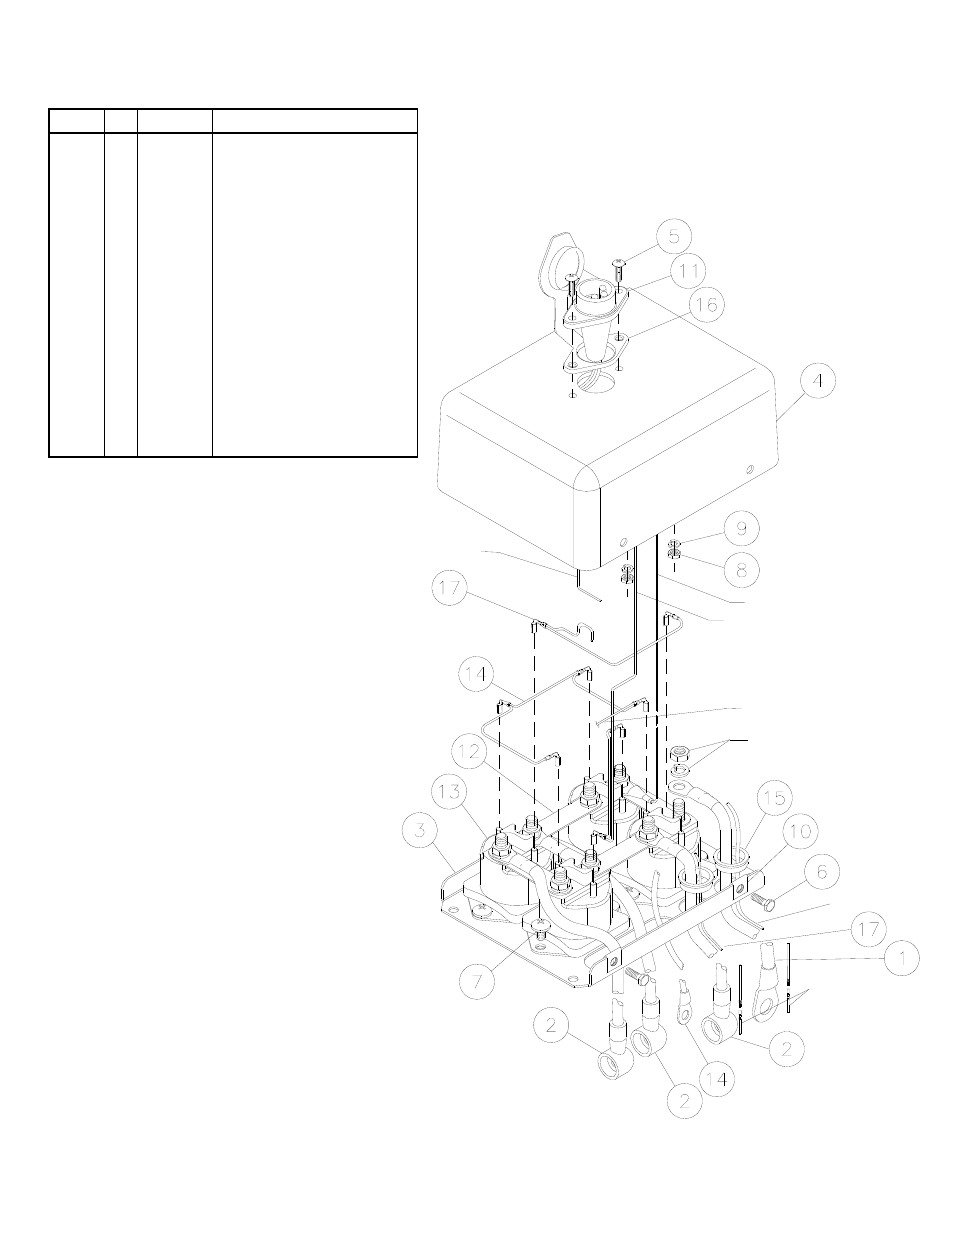 Ramsey Winch PATRIOT 15000 W_LOWERED SOLENOID User Manual ... on